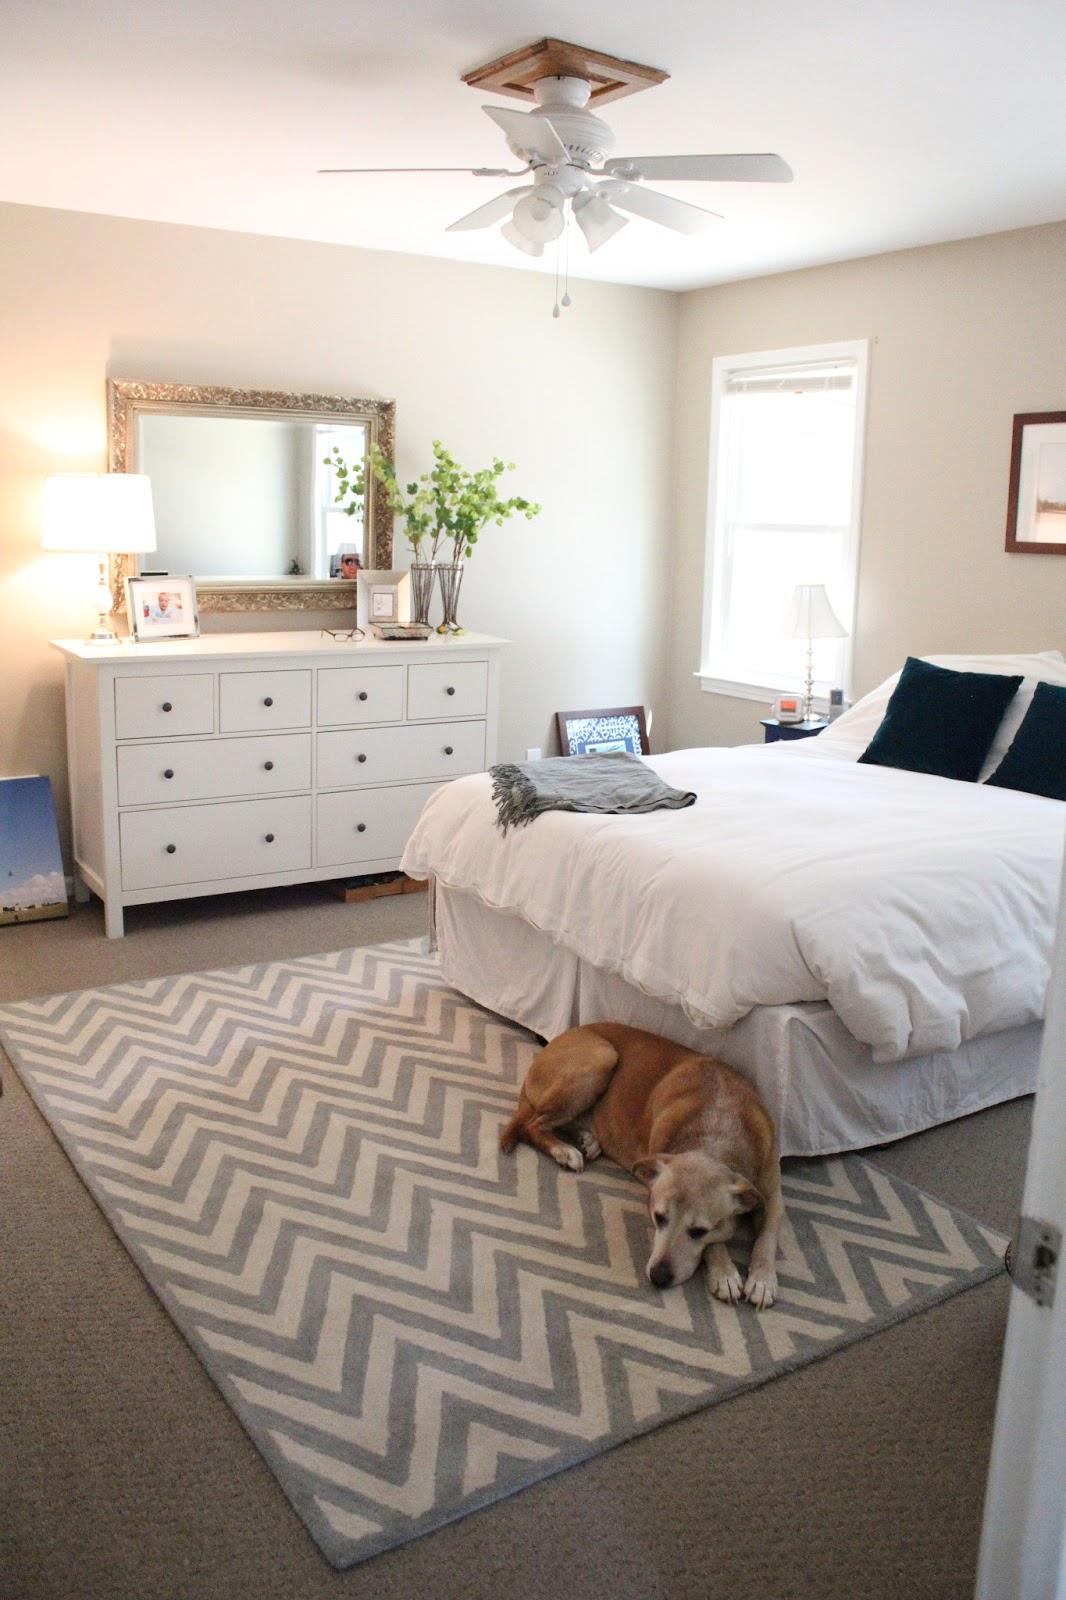 Best Ten June Our Rental House A Master Bedroom Tour This Month